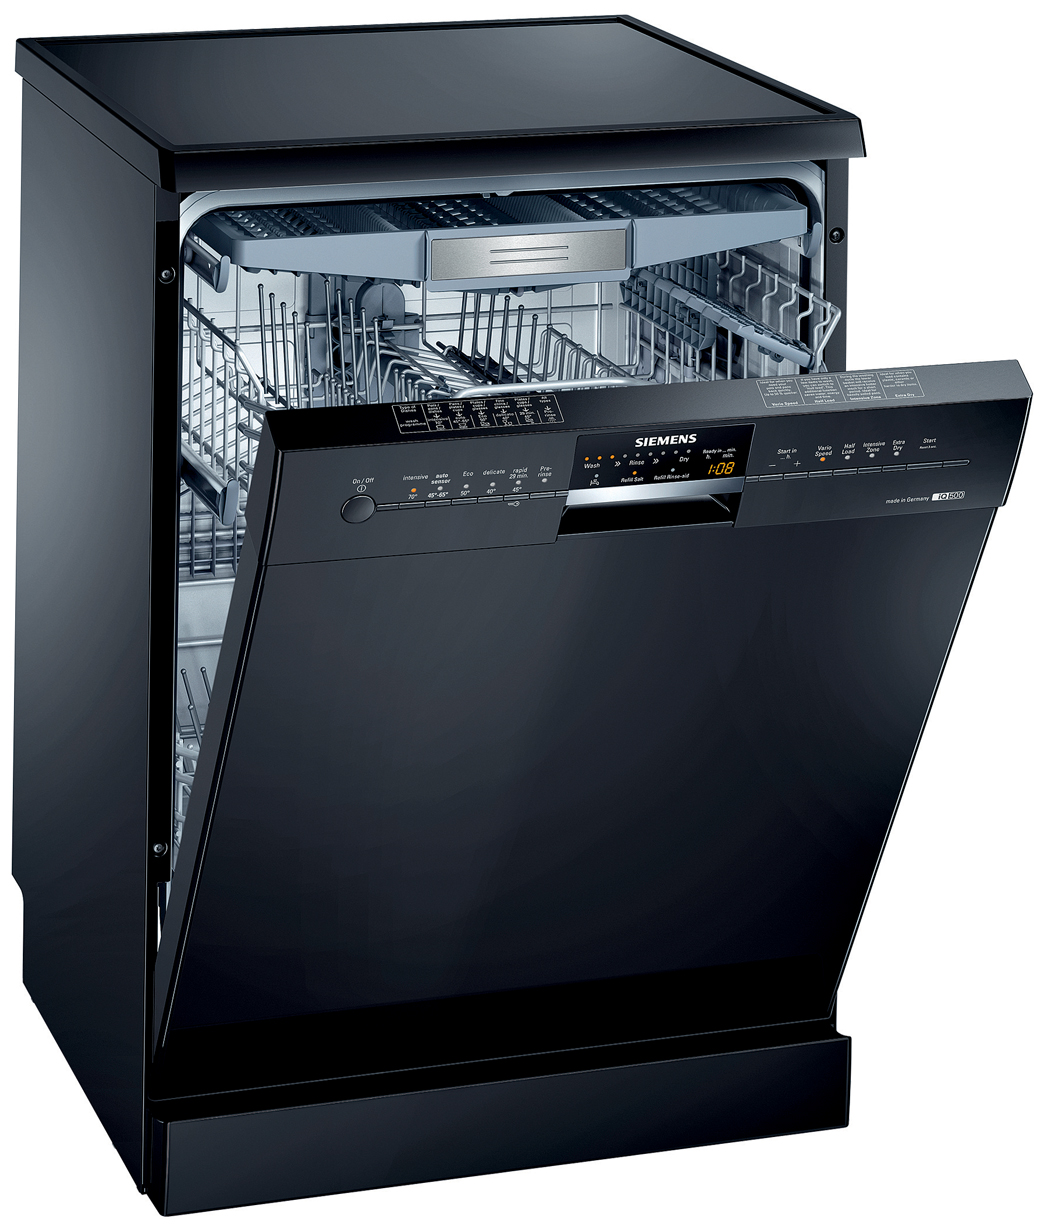 Dishwasher Repair National Appliance Service Amp Repair